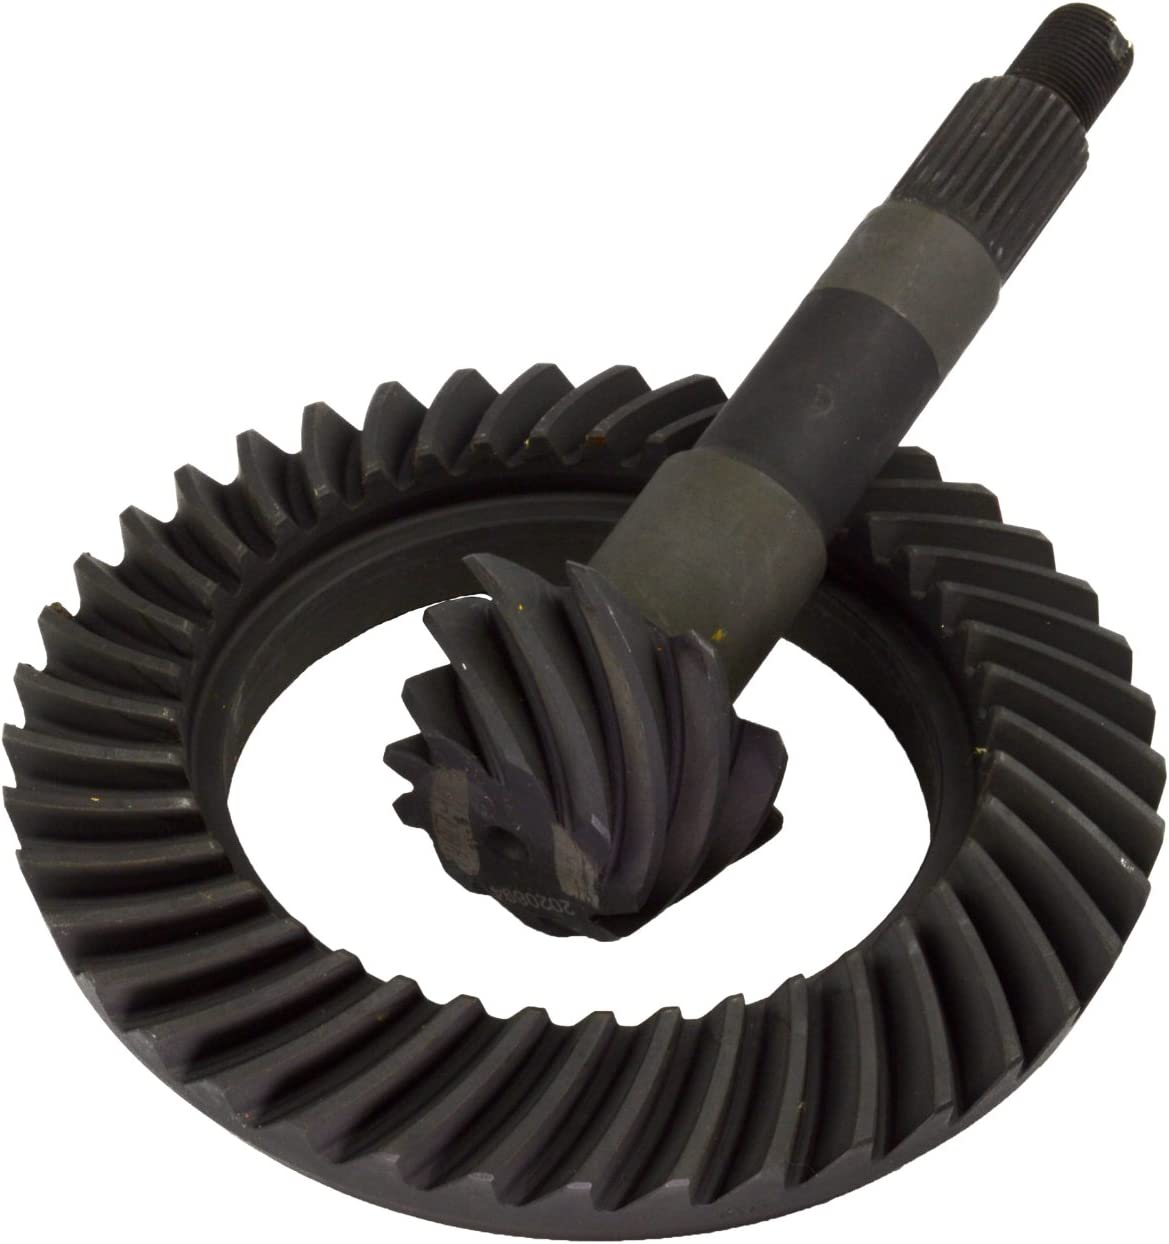 SVL 2020793 Differential Ring and Pinion Gear Set for DANA 44 4.27 Ratio